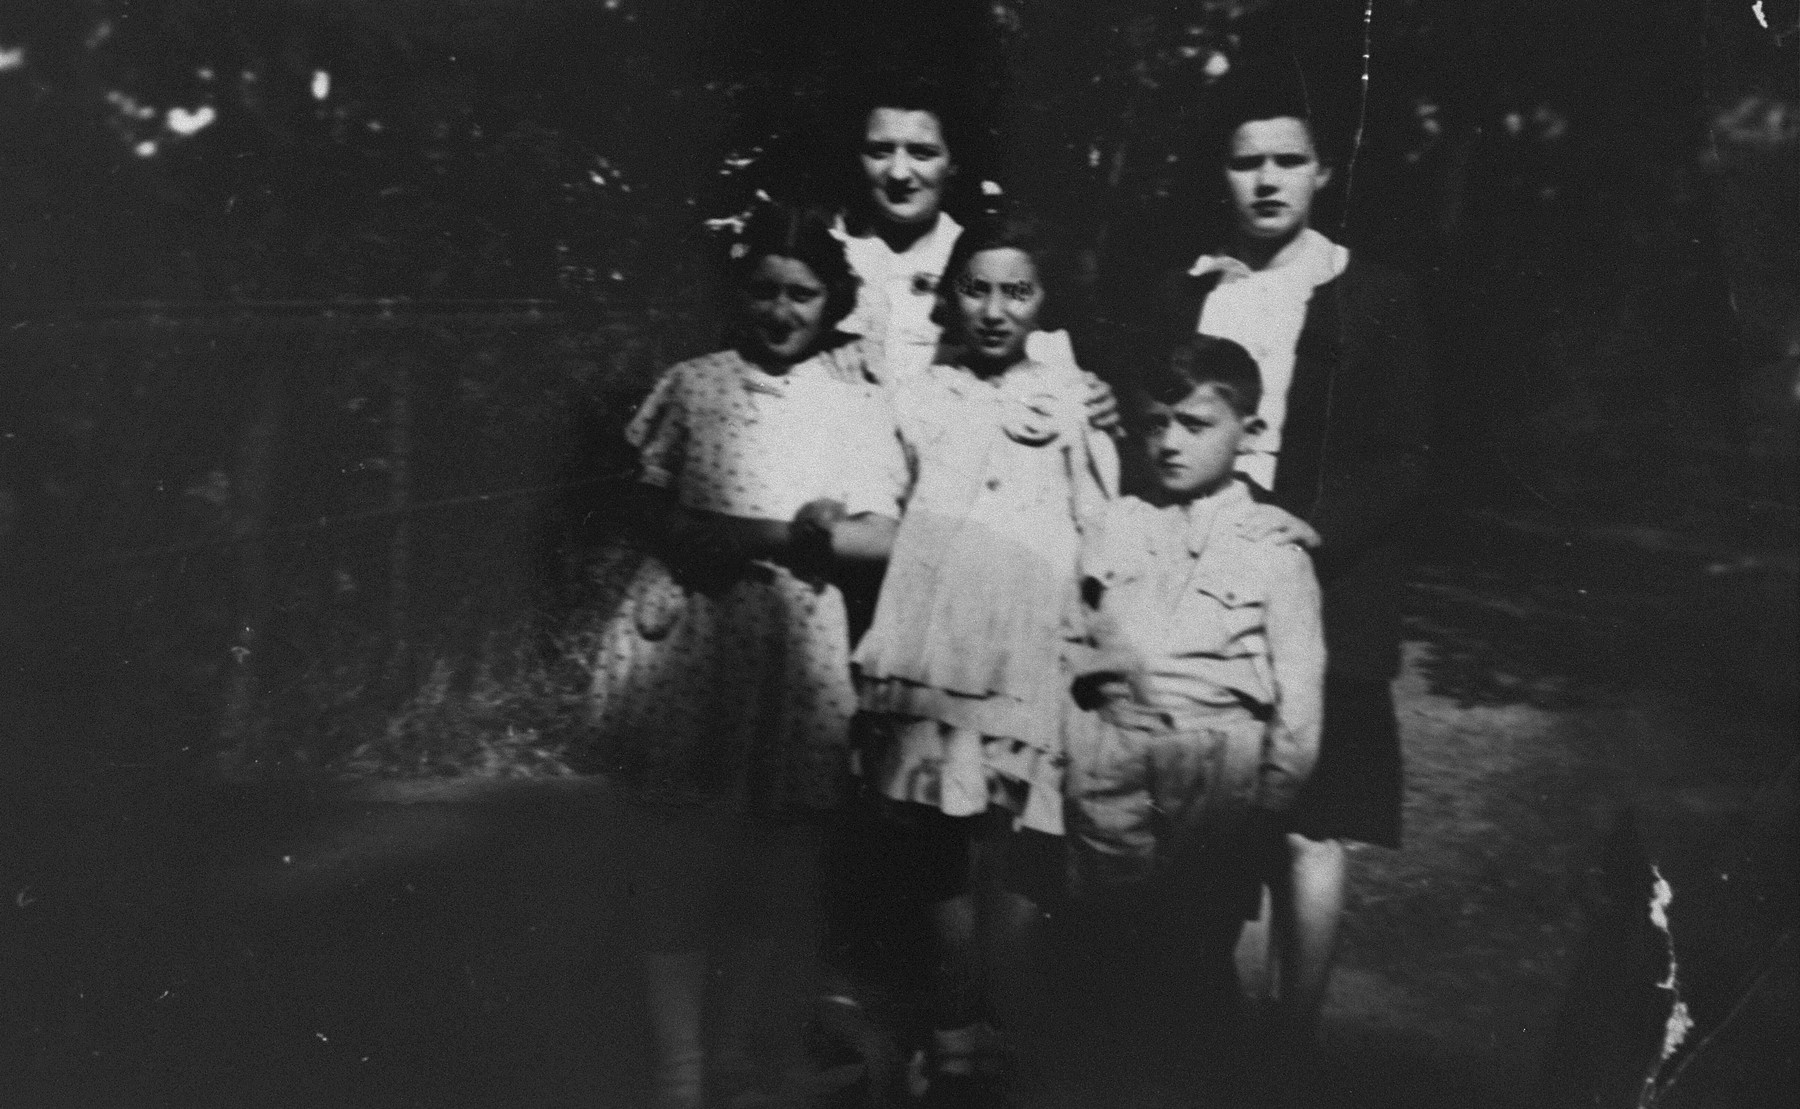 Chana Fajga Pesses poses with her children and members of the Leroux family, who are hiding them, during a visit to their home in Brou.  Pictured in the front row, from left to right, are: Berthe Pesses, Marcelle Rotleder, and Albert Pesses.  In the back row, from left to right, are: Chana Fajga Pesses and Edith Leroux.